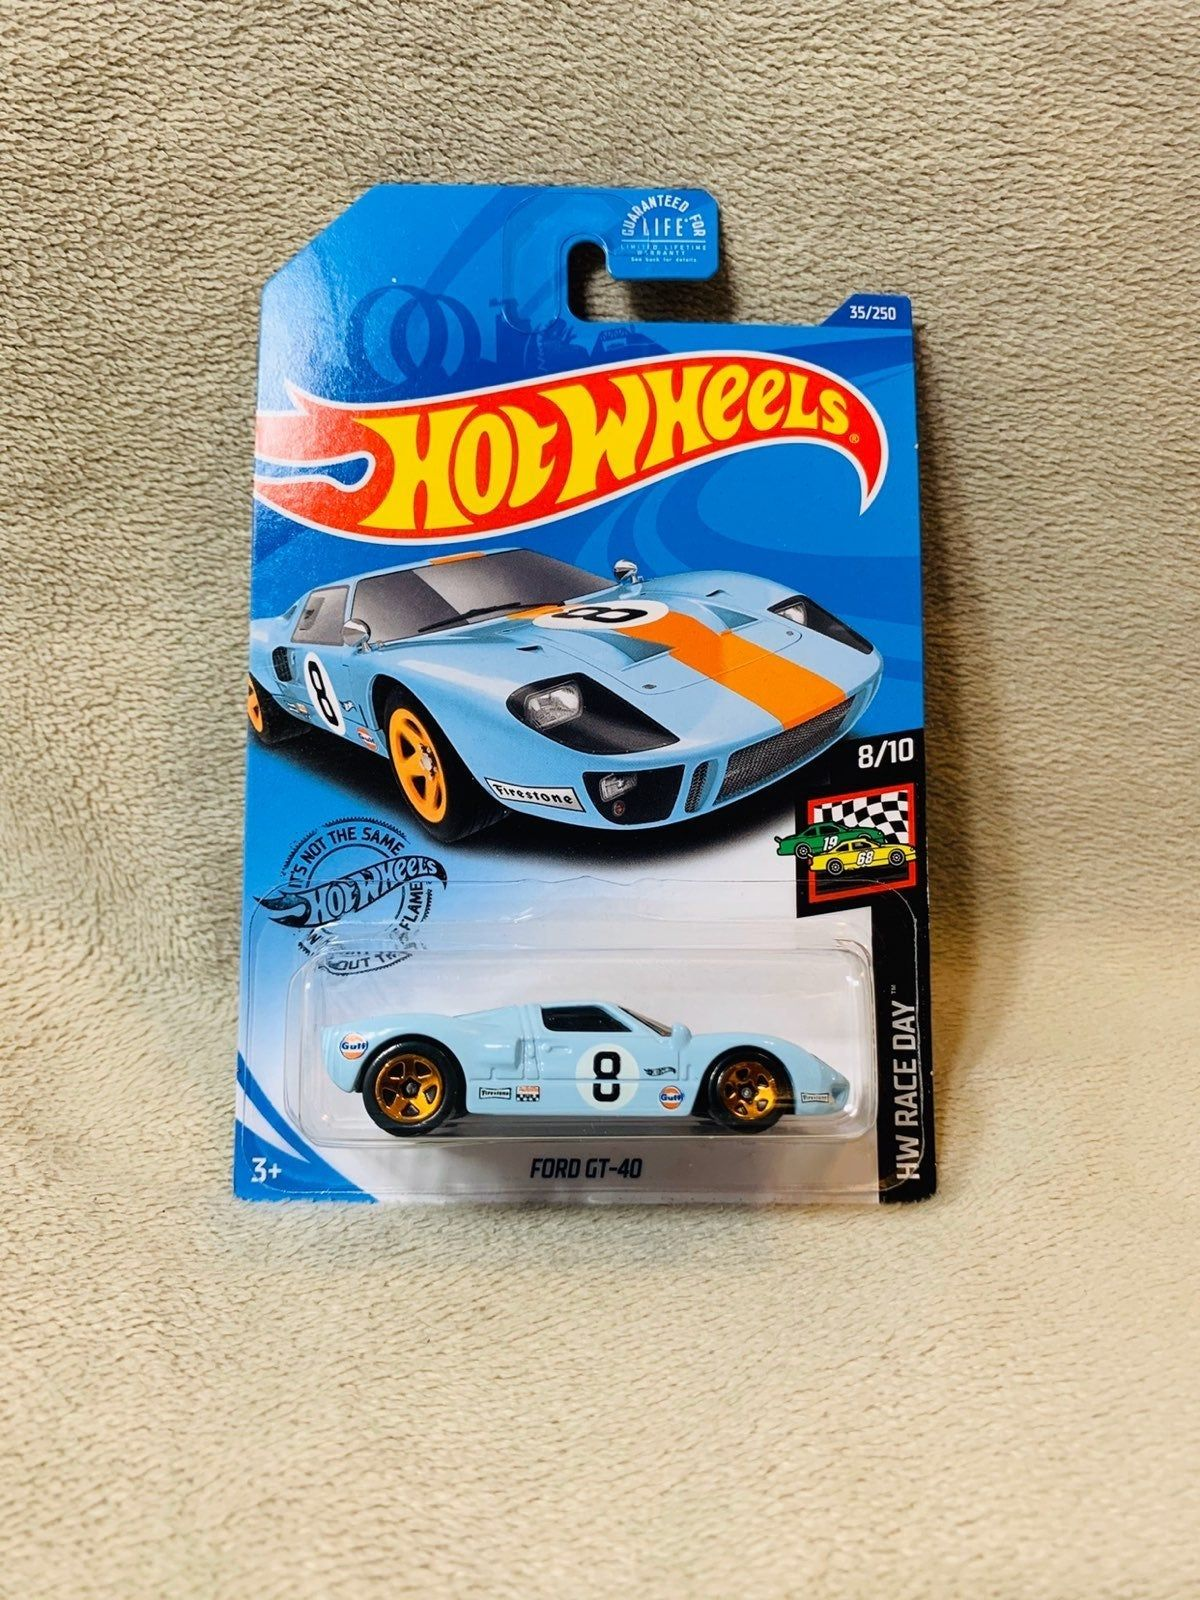 New Hot Wheels Ford Gt 40 Ford Gt Hot Wheels Plastic Model Kits